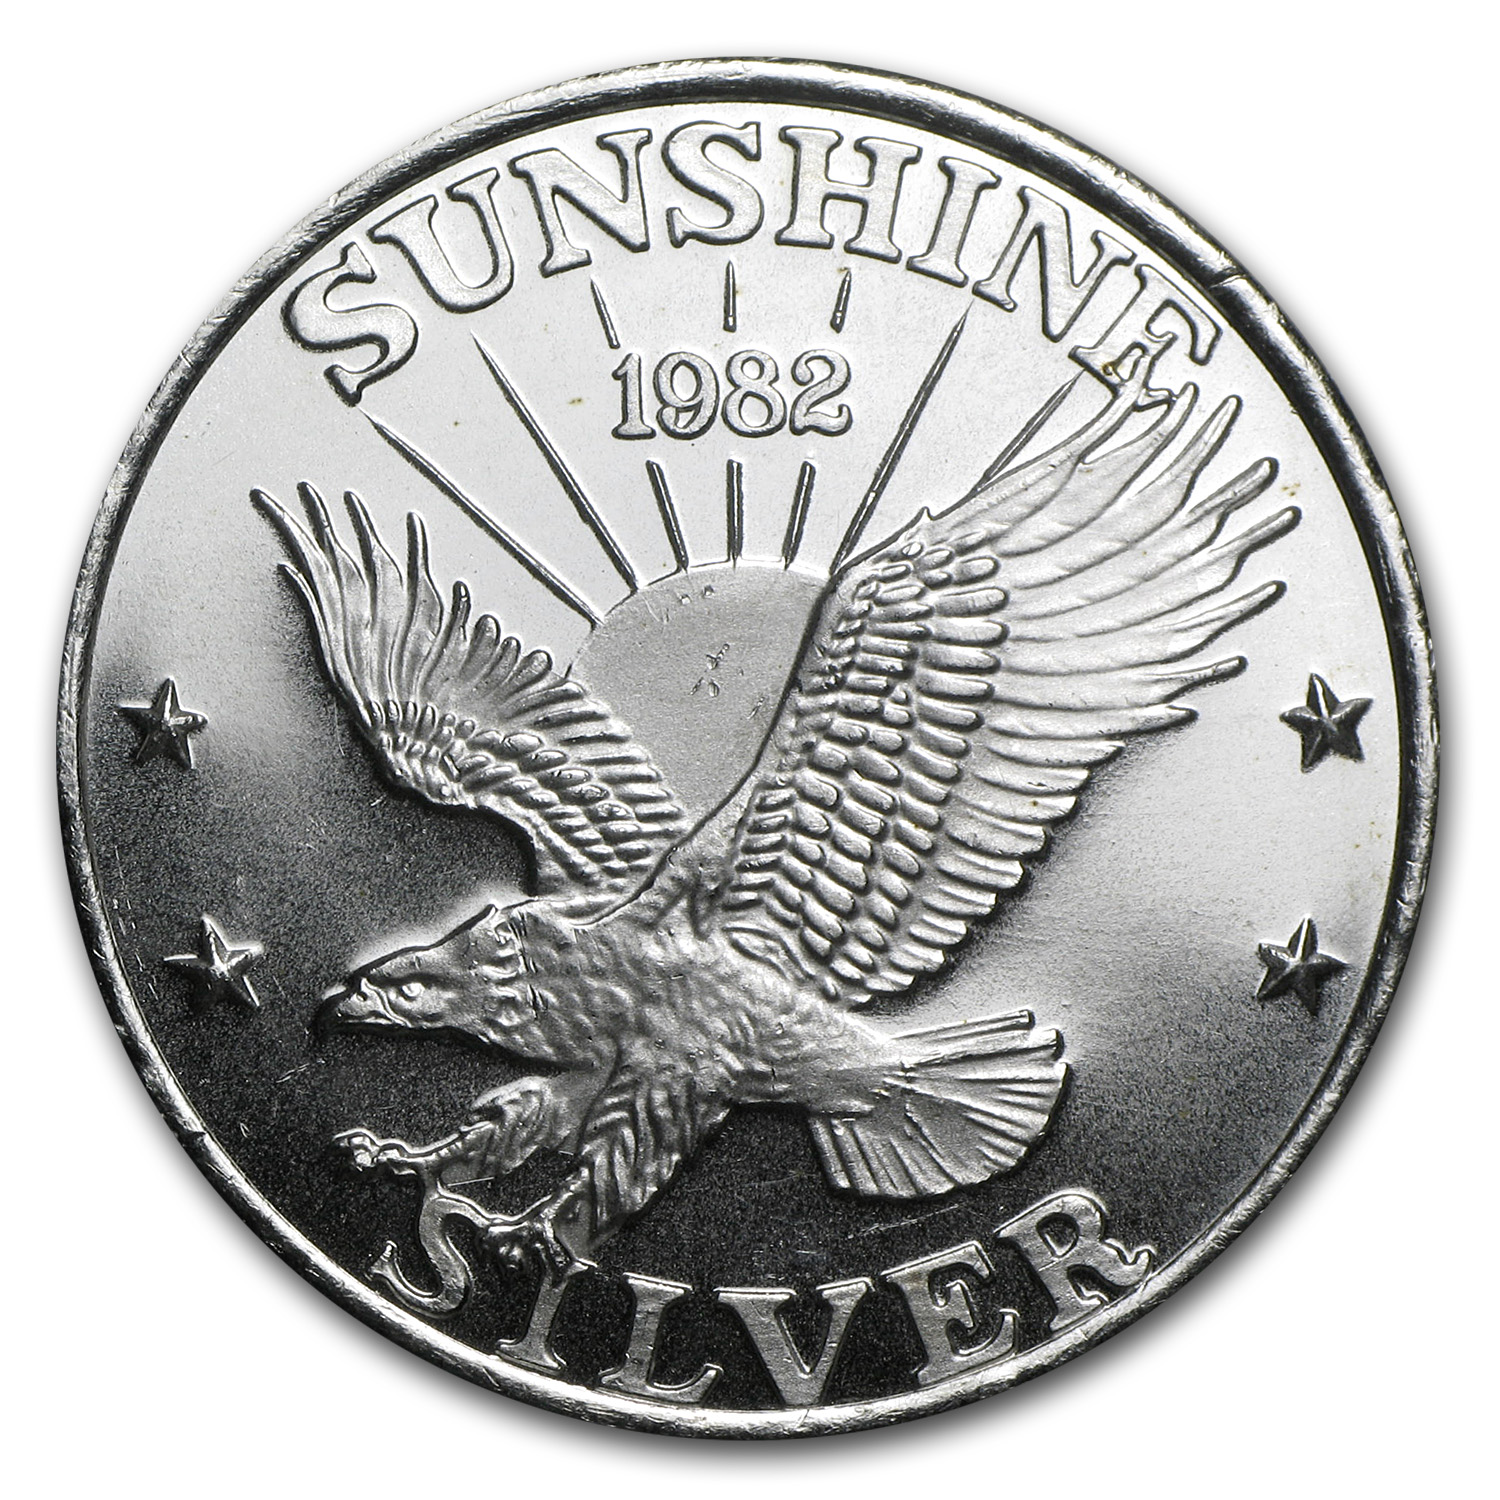 1 oz Silver Round - Sunshine Mining (Vintage, Dated)